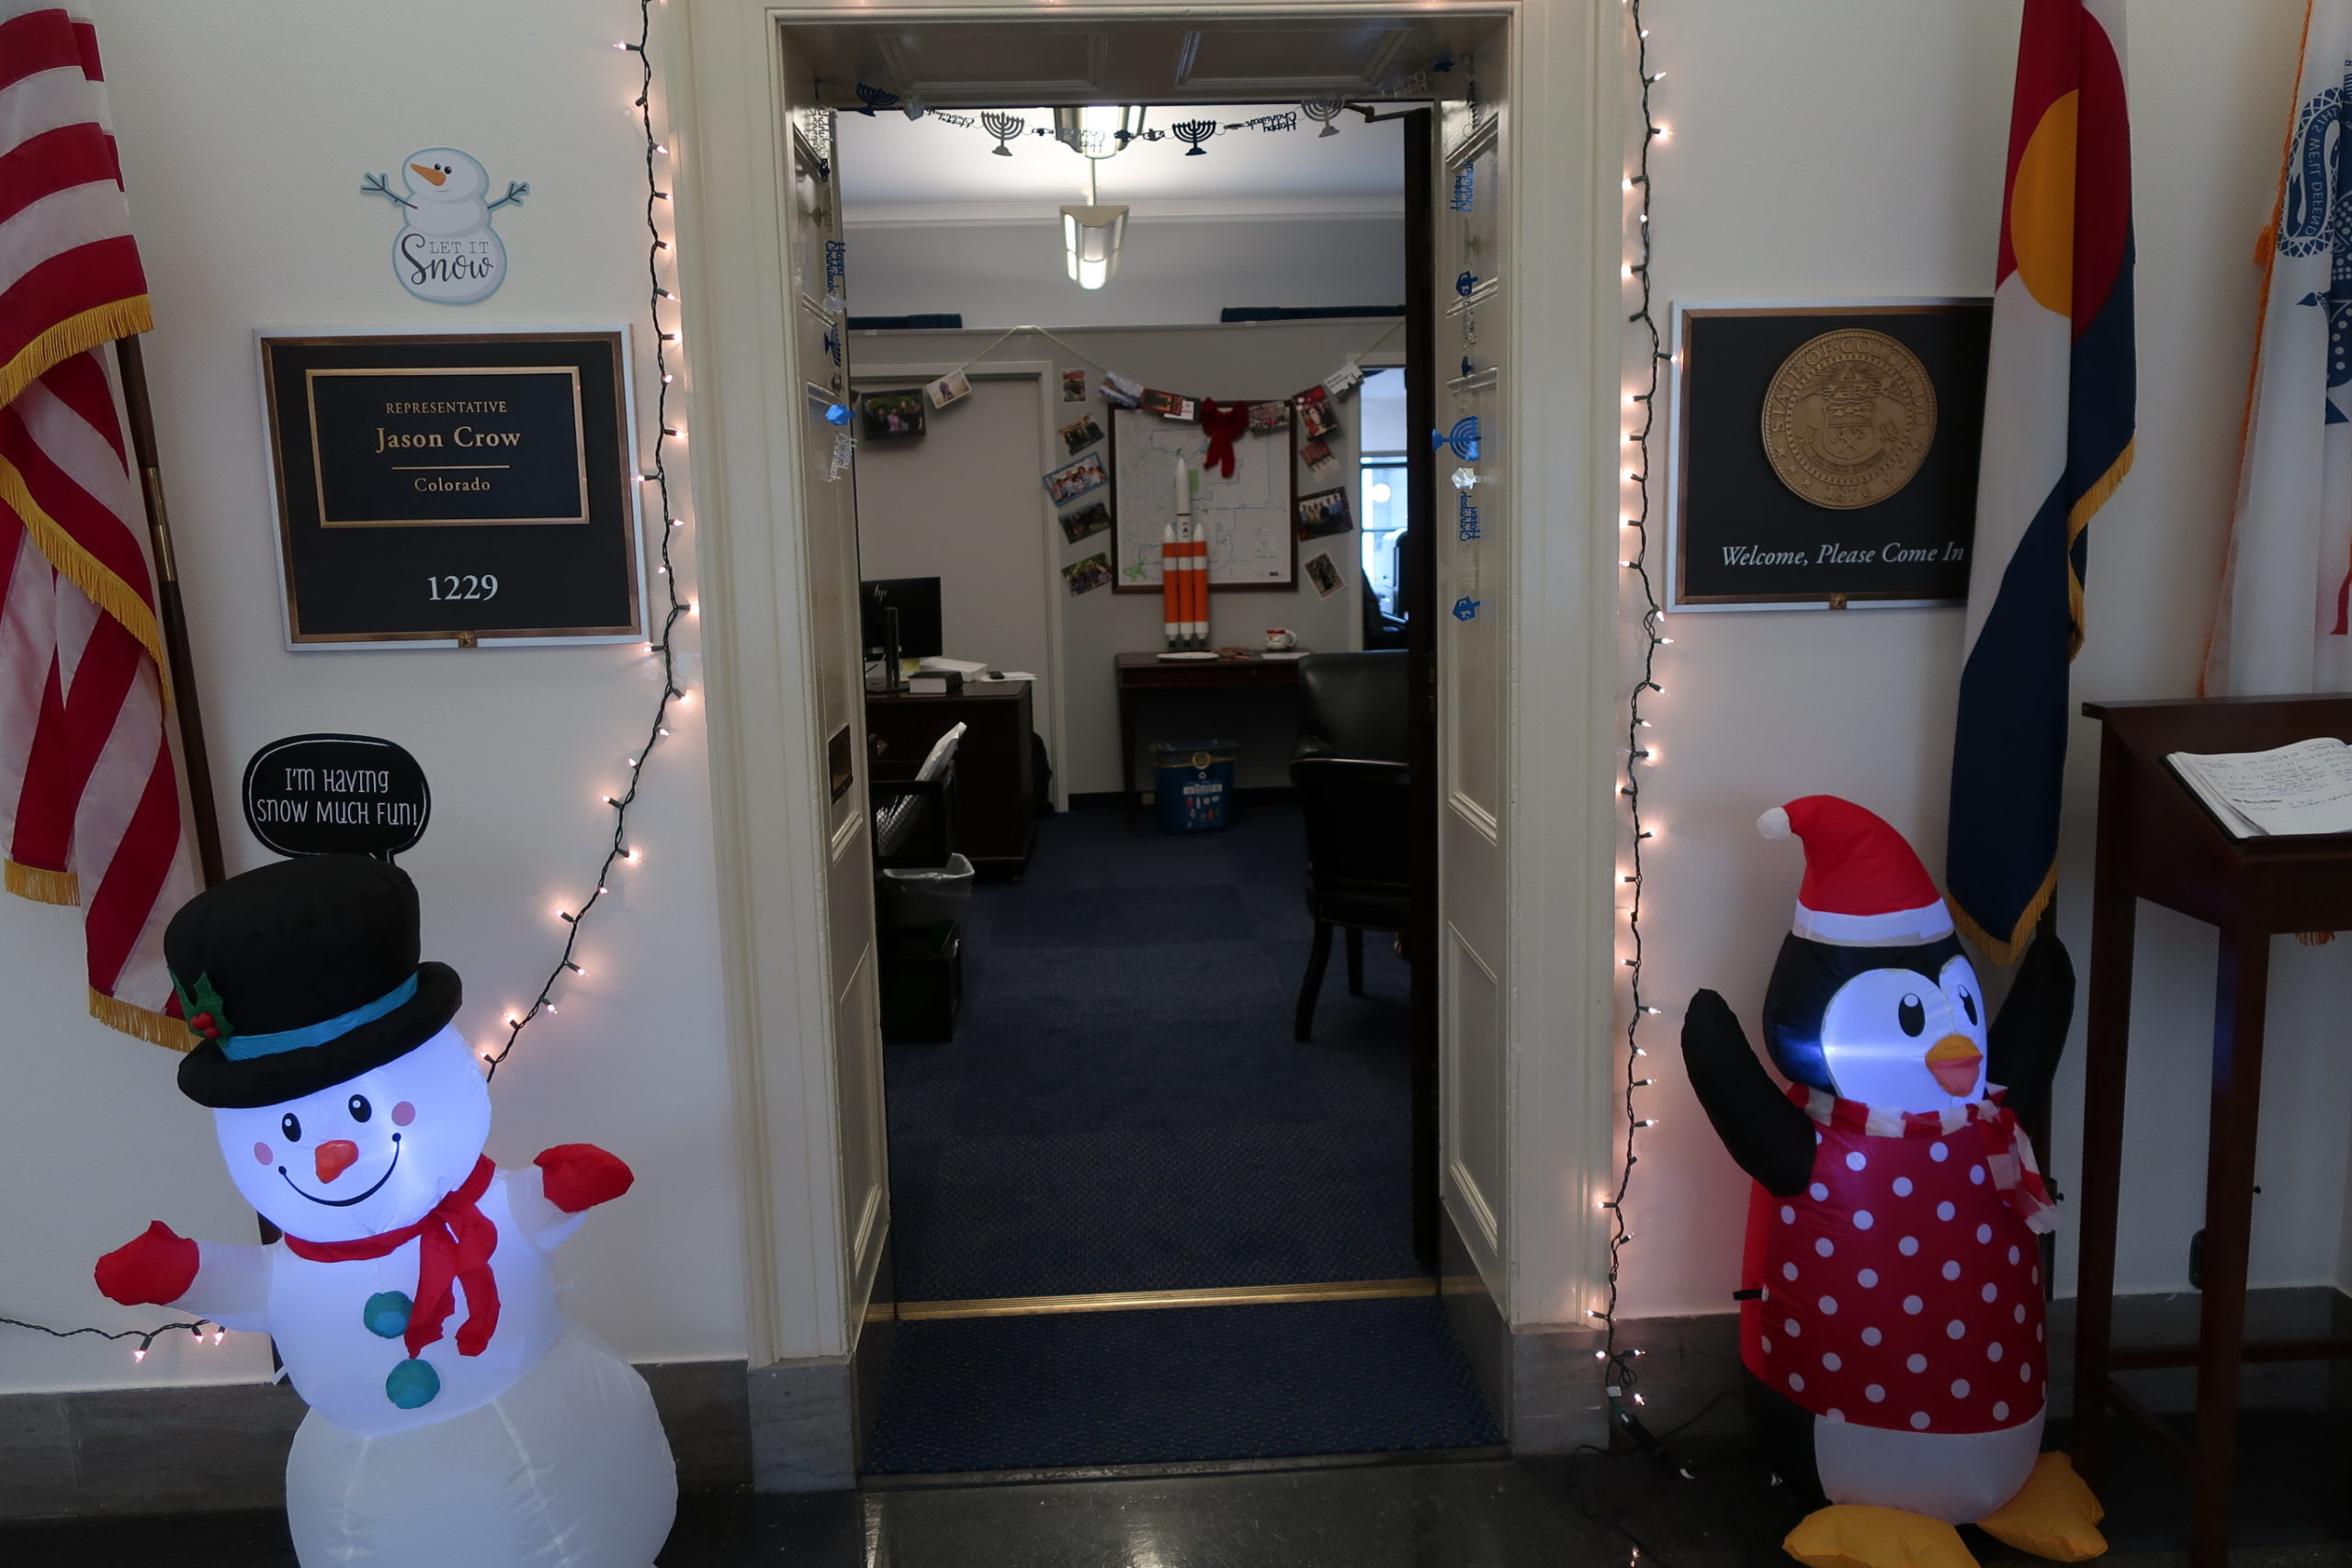 Some of the holiday decorations outside the D.C. office of Rep. Jason Crow.